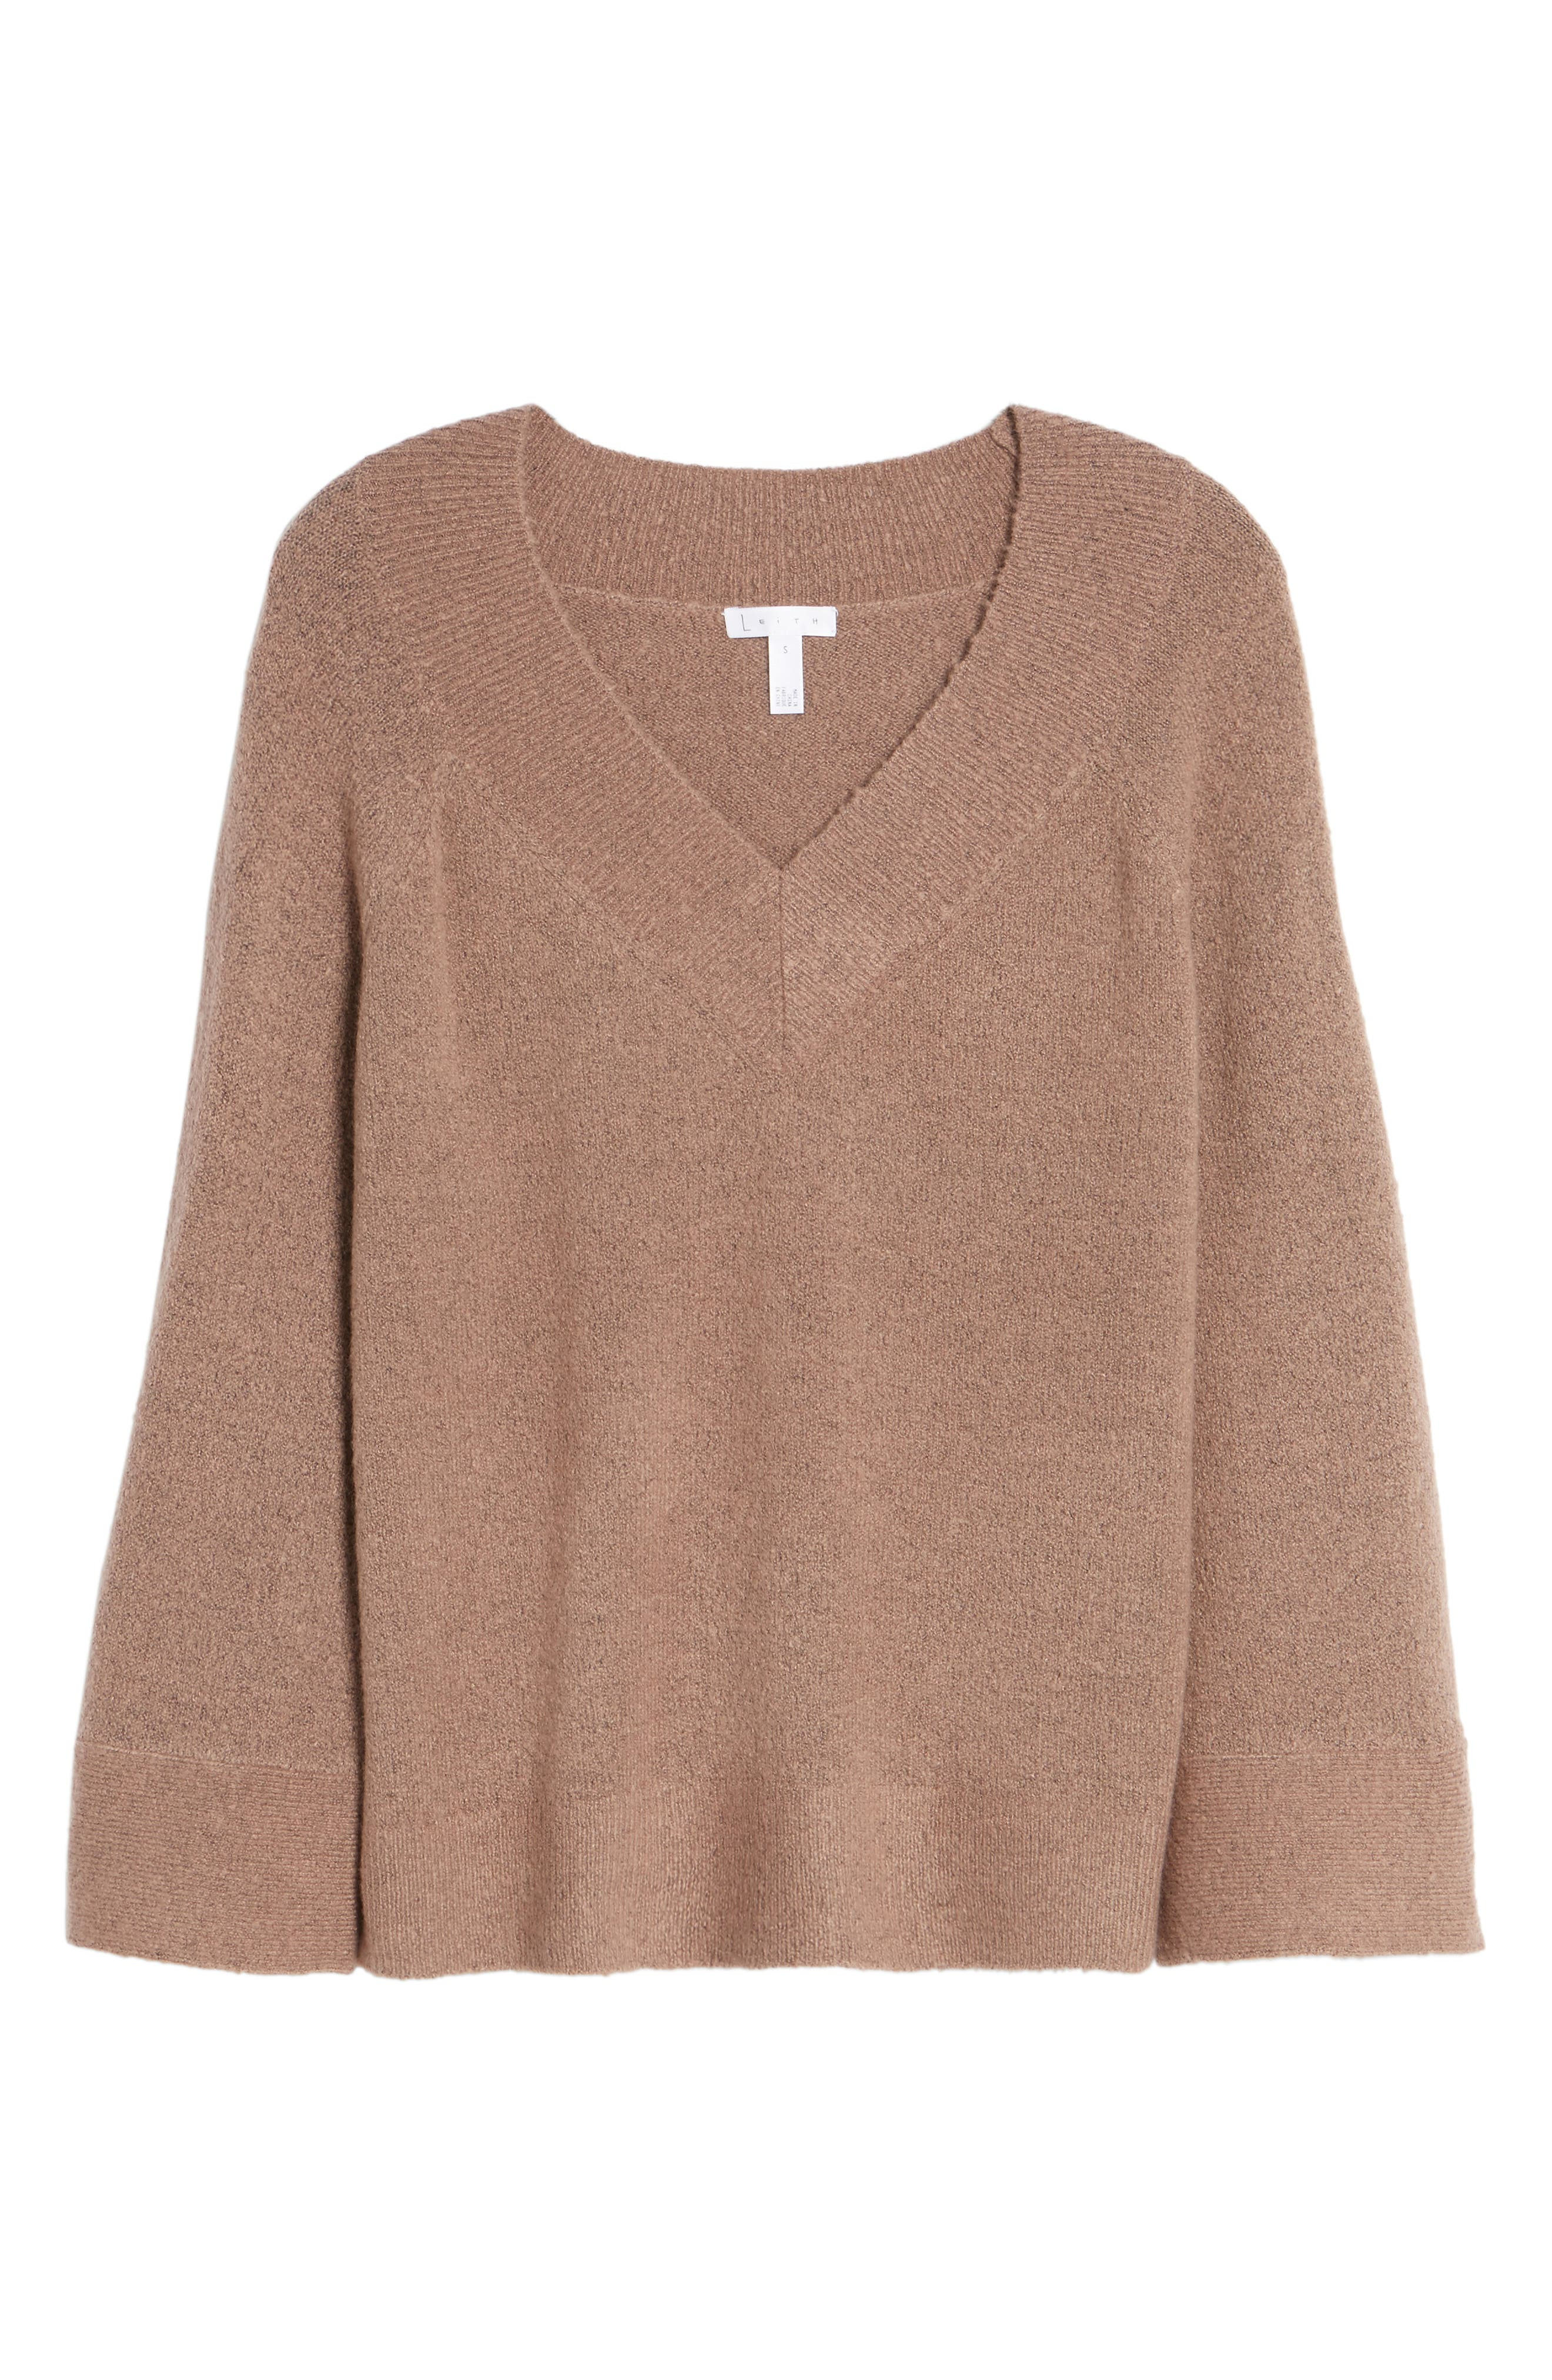 Bell Sleeve Sweater,                             Alternate thumbnail 6, color,                             Brown Taupe